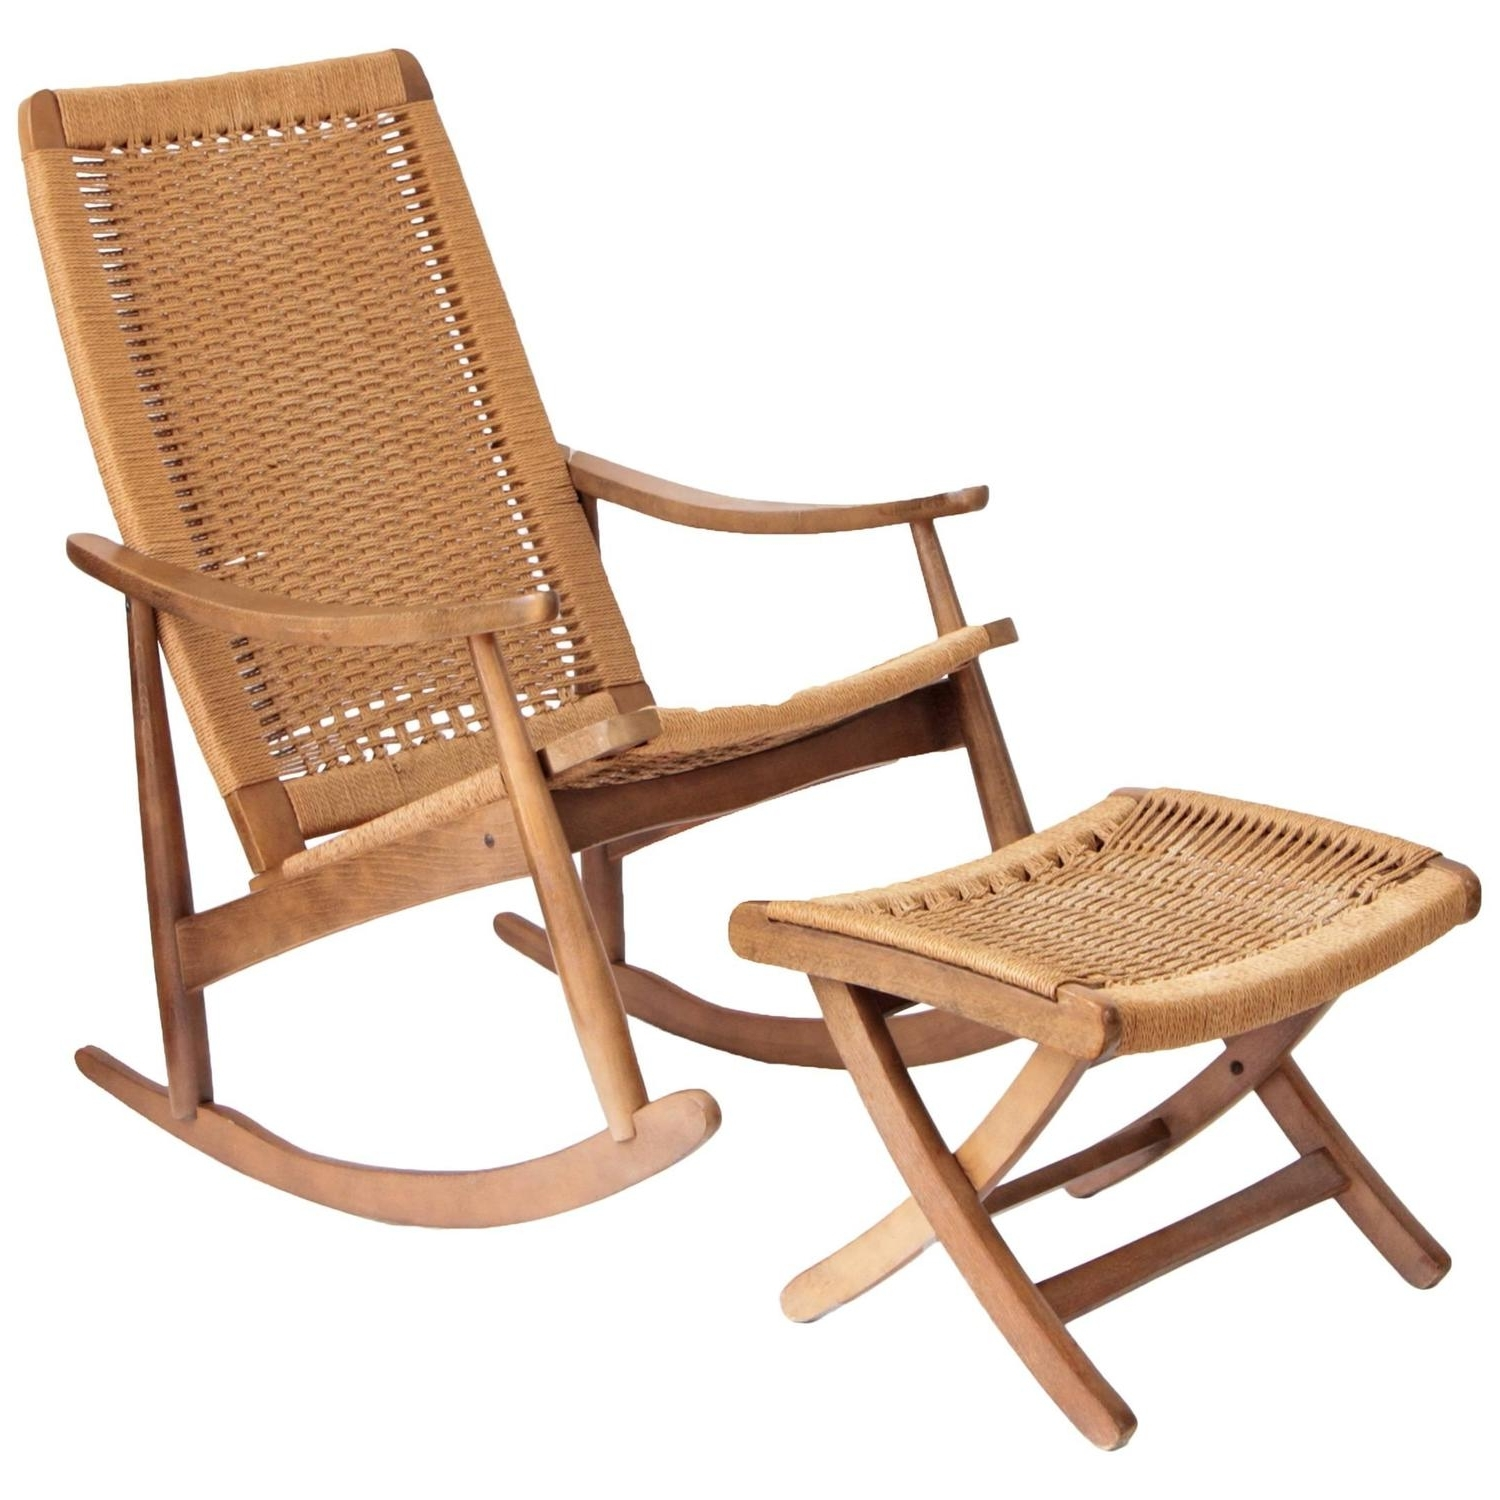 Most Recently Released Woven Rope Mid Century Modern Rocking Chair And Ottoman At 1stdibs Regarding Rocking Chairs With Ottoman (View 3 of 20)